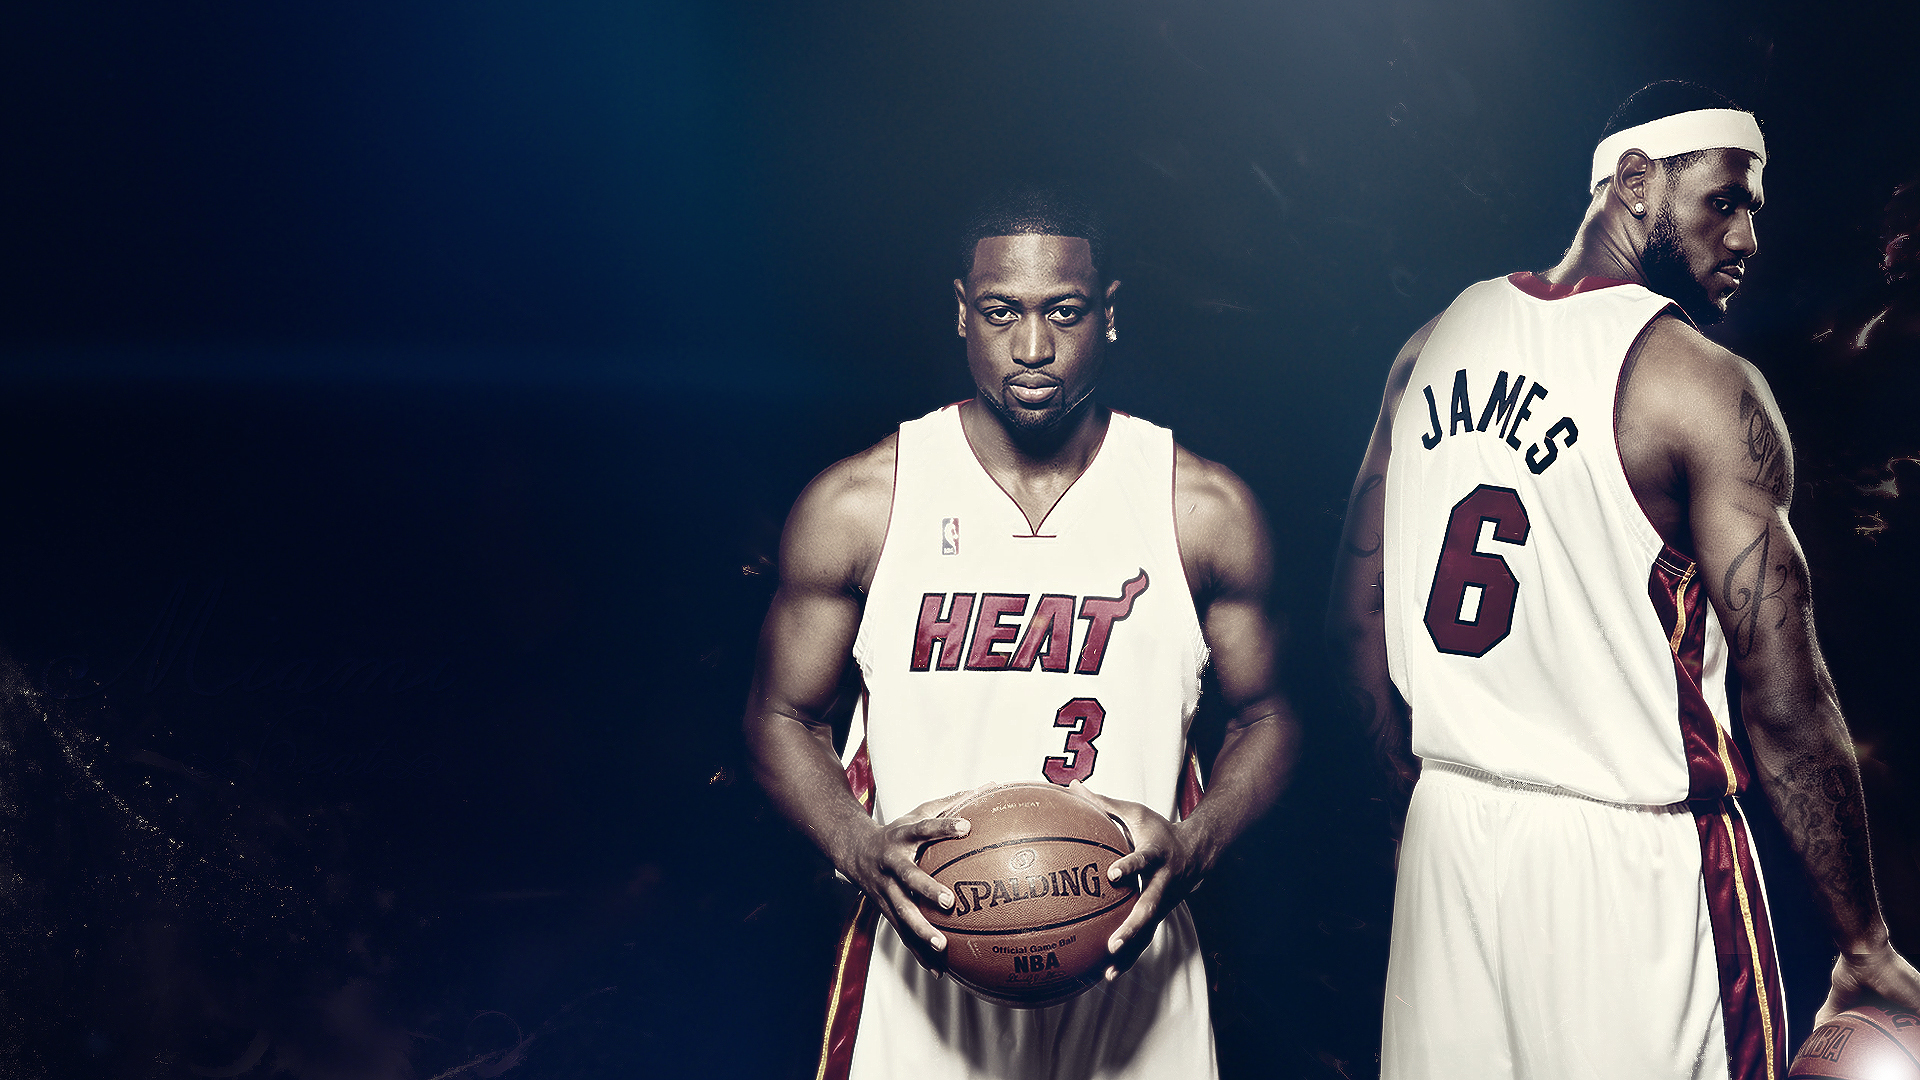 Lebron And Wade Wallpapers Wallpaper Cave